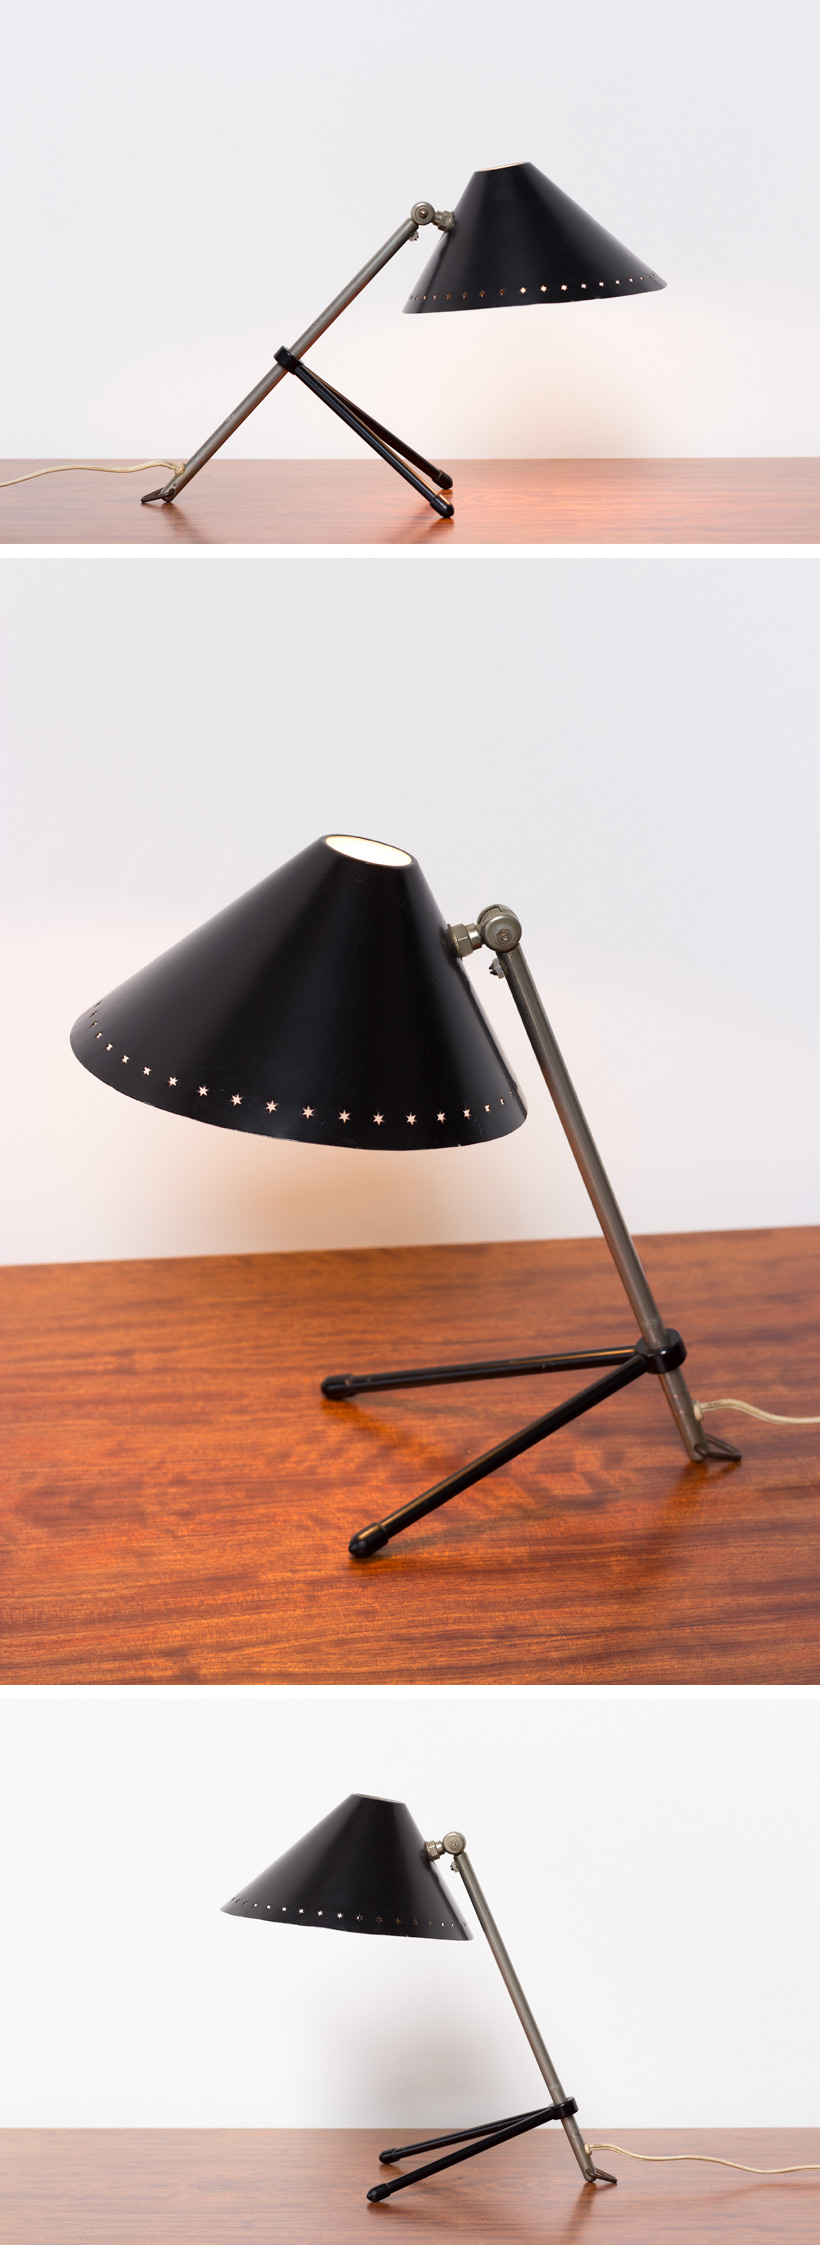 H Busquet black Pinocchio lamp Large